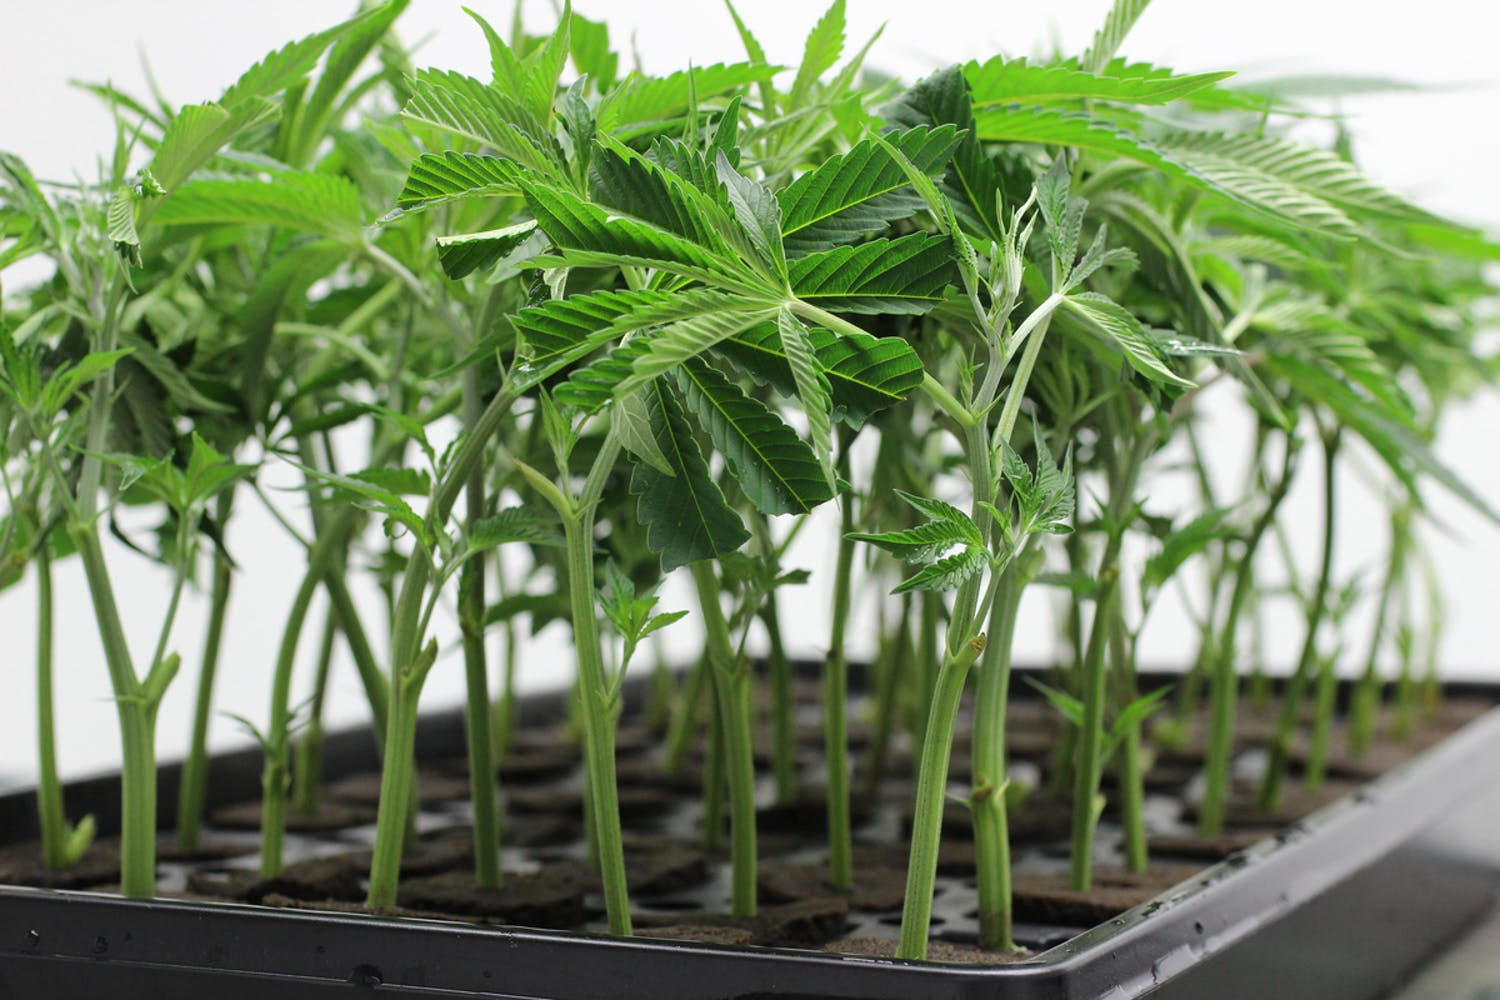 First Texas Marijuana Grow Ops Coming Soon 4 of 4 How robots could run the future cannabis industry, from farming to delivery